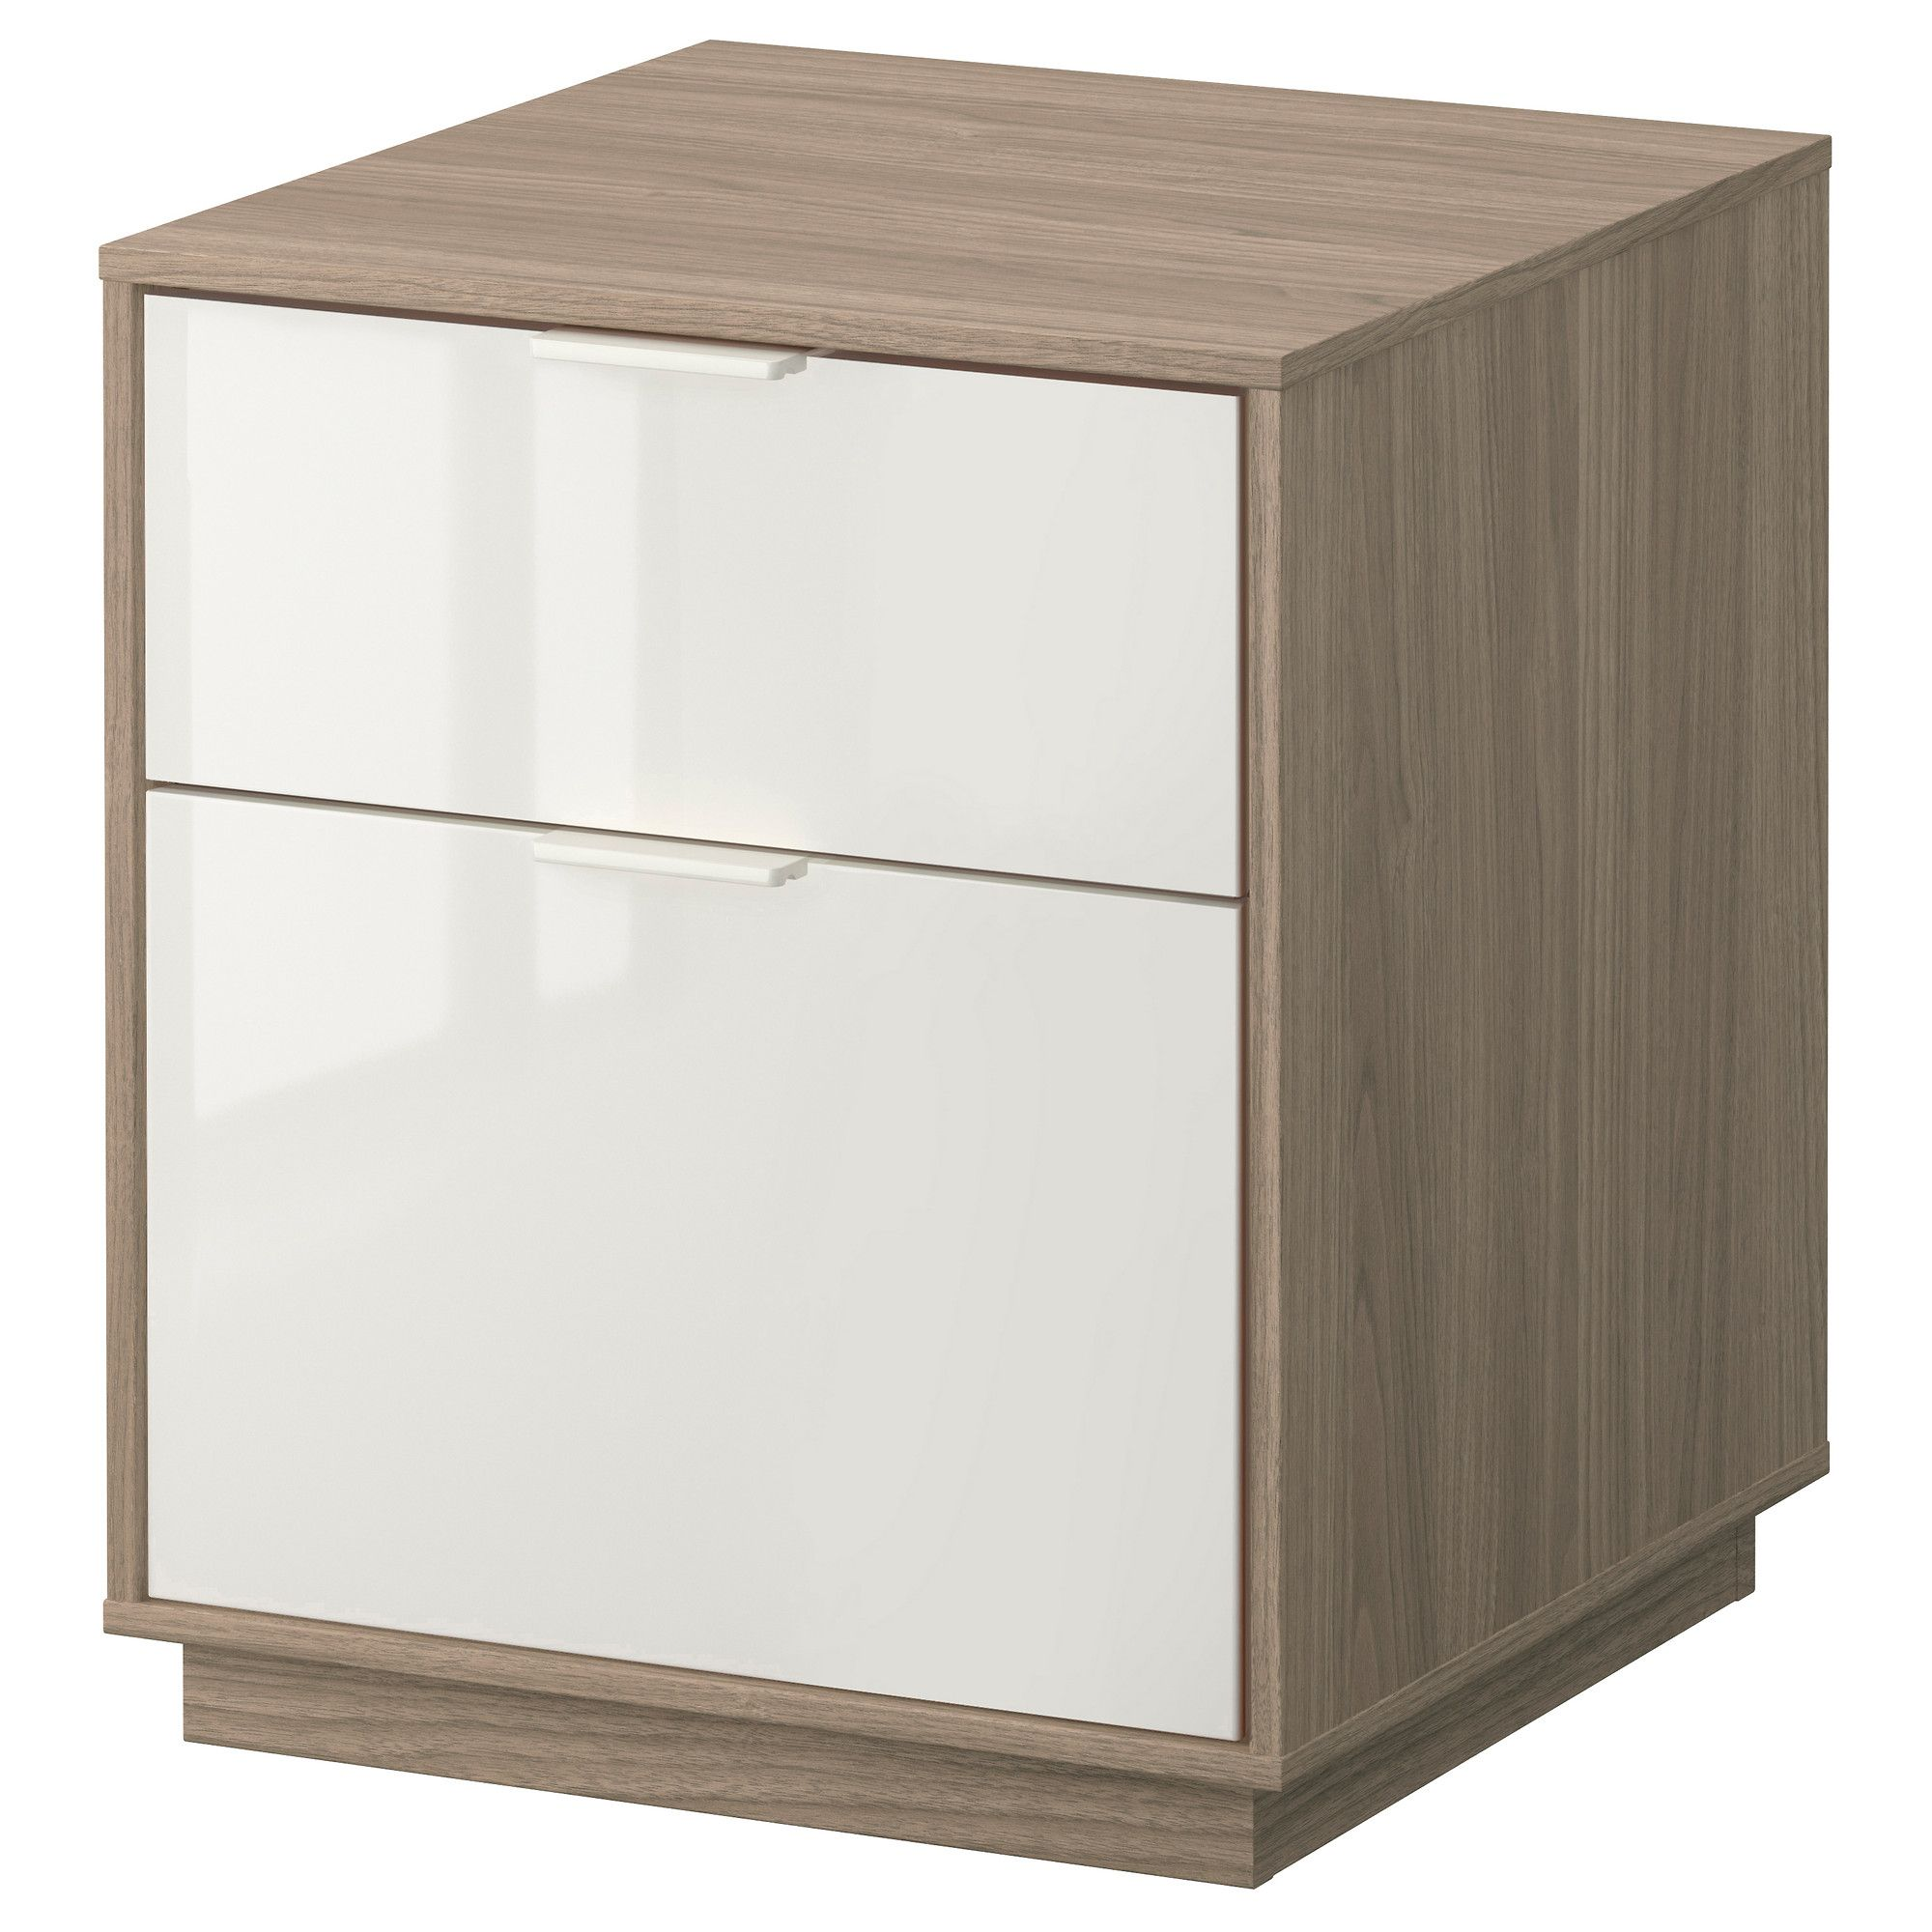 Comodino Nyvoll Ikea.Buy Furniture Thailand Online L Ikea Thailand Home Design